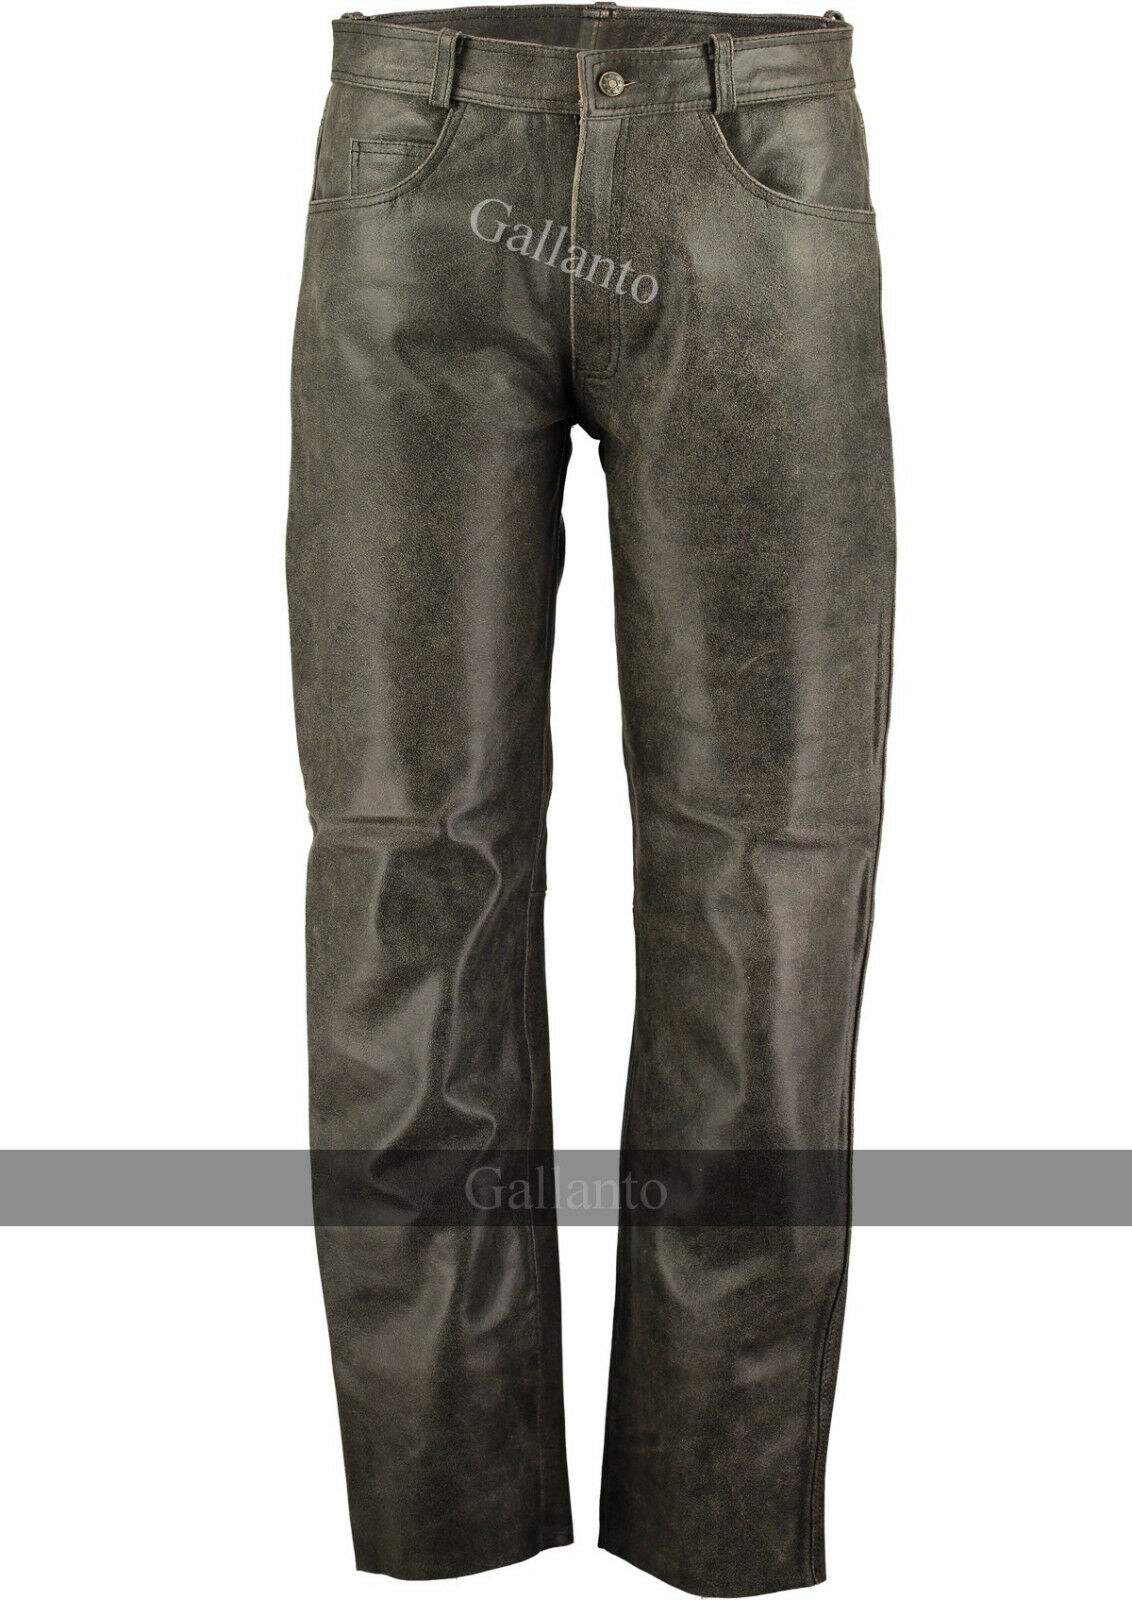 Motorcycle Pants Distressed Leather Motorcycle Trousers Vintage Leather Biker